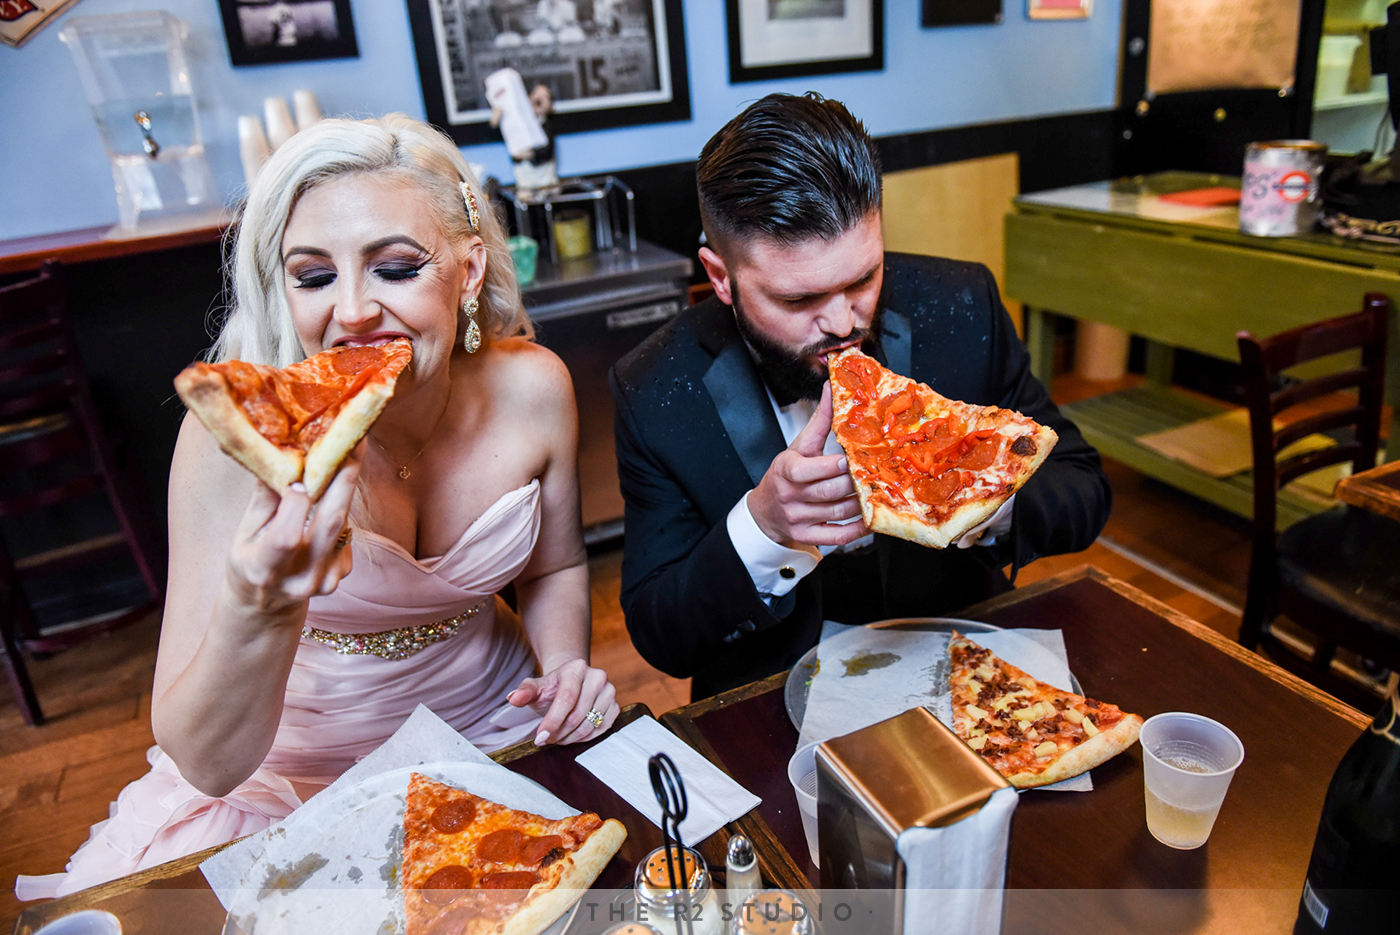 Sommer and Brody spared no expense during this spur of the moment pit stop at a local San Francisco pizza joint, which included a quick toast of champagne in plastic dixie cups.